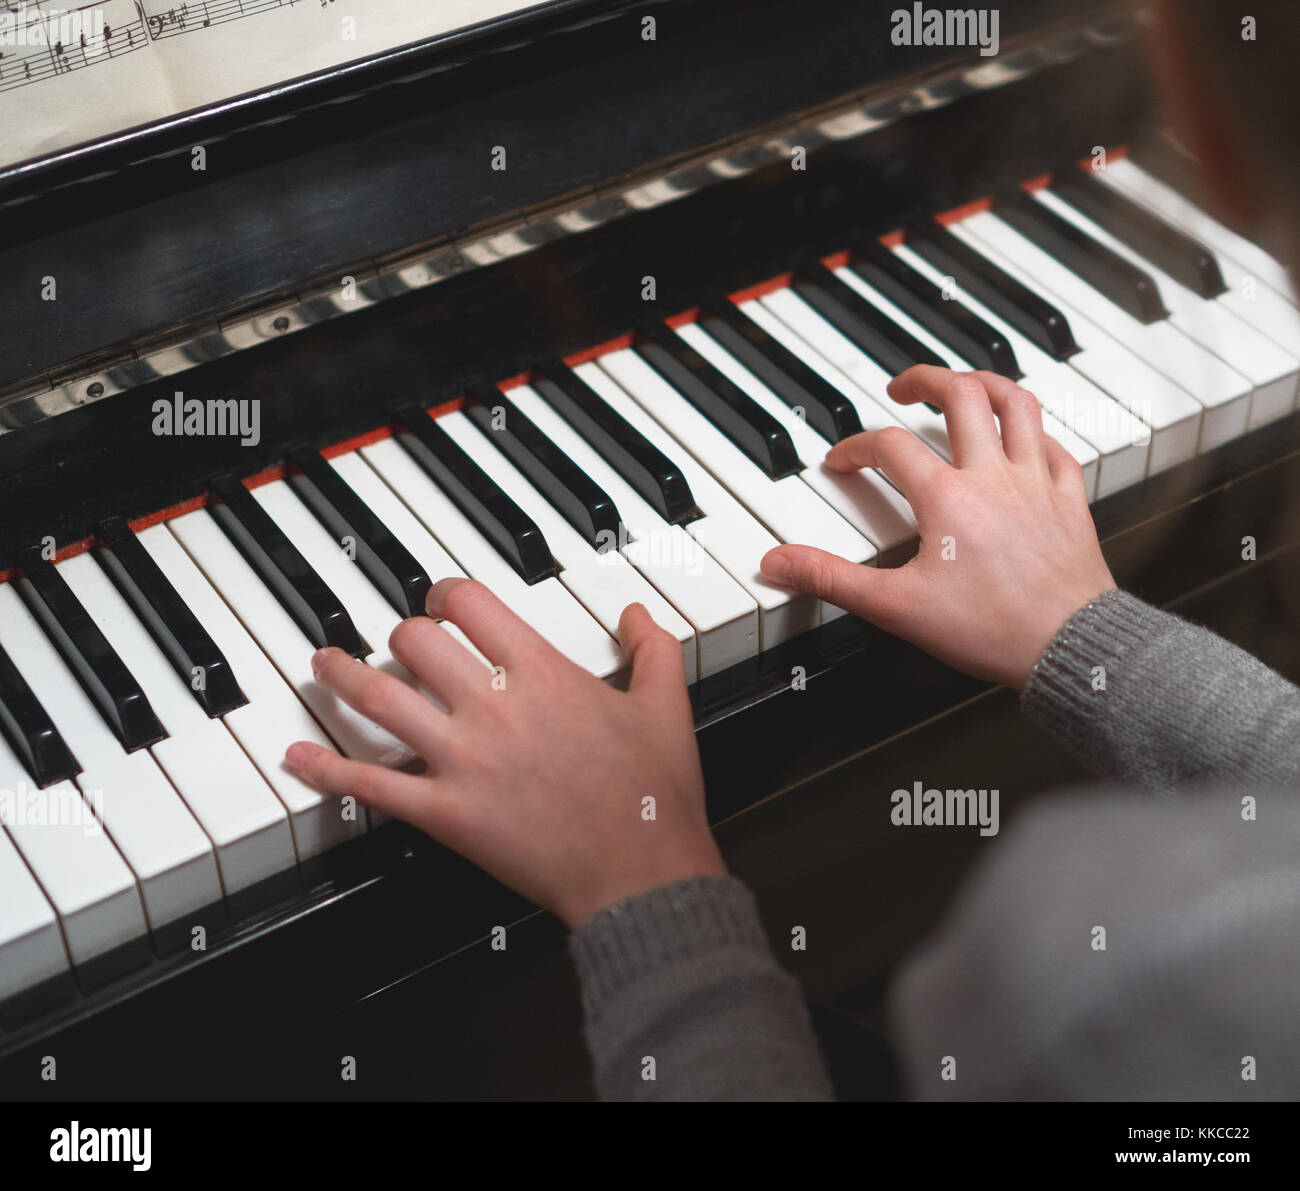 Child learns to play the piano. - Stock Image